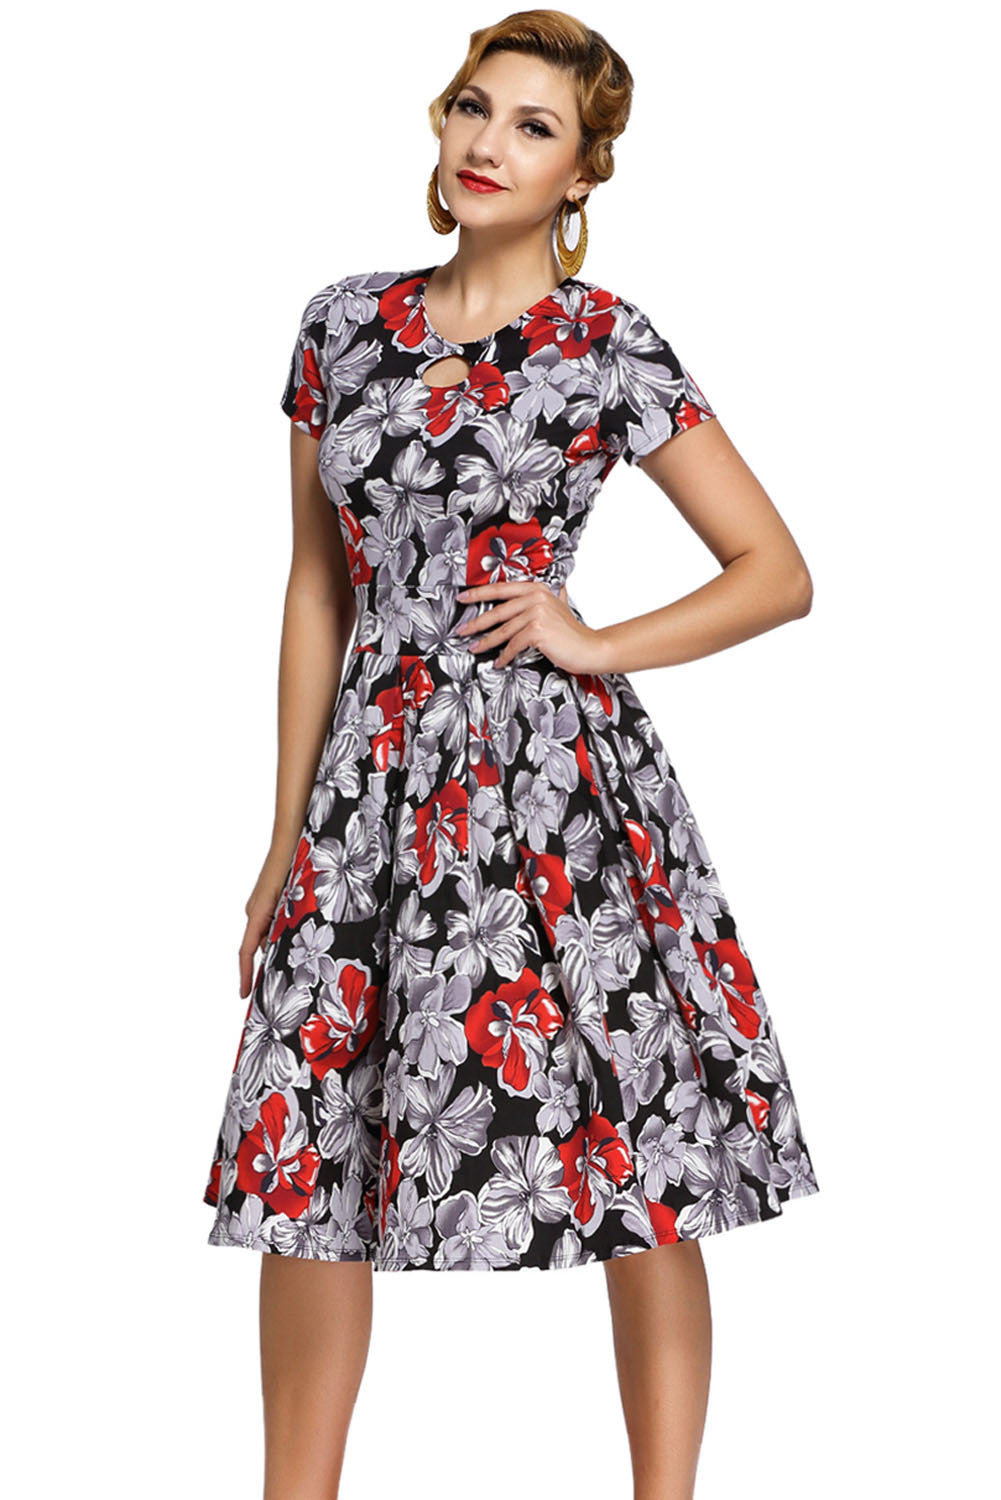 Unique Vintage 1950s Style Red Floral Short Sleeves Swing Dress